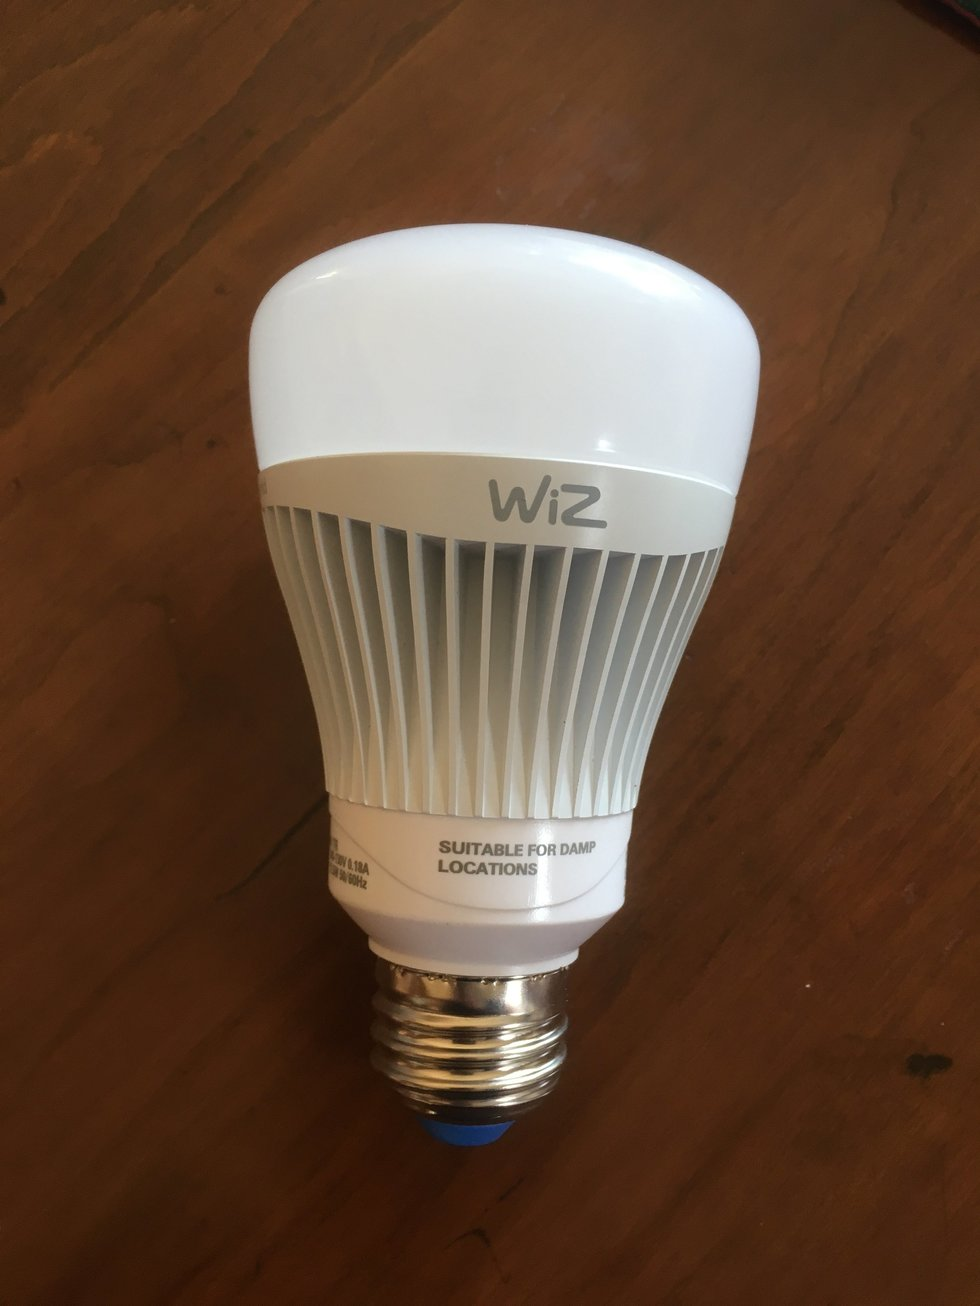 2 Pack of Wiz Smart Lights comes with 2 Wi-Fi LED Bulbs